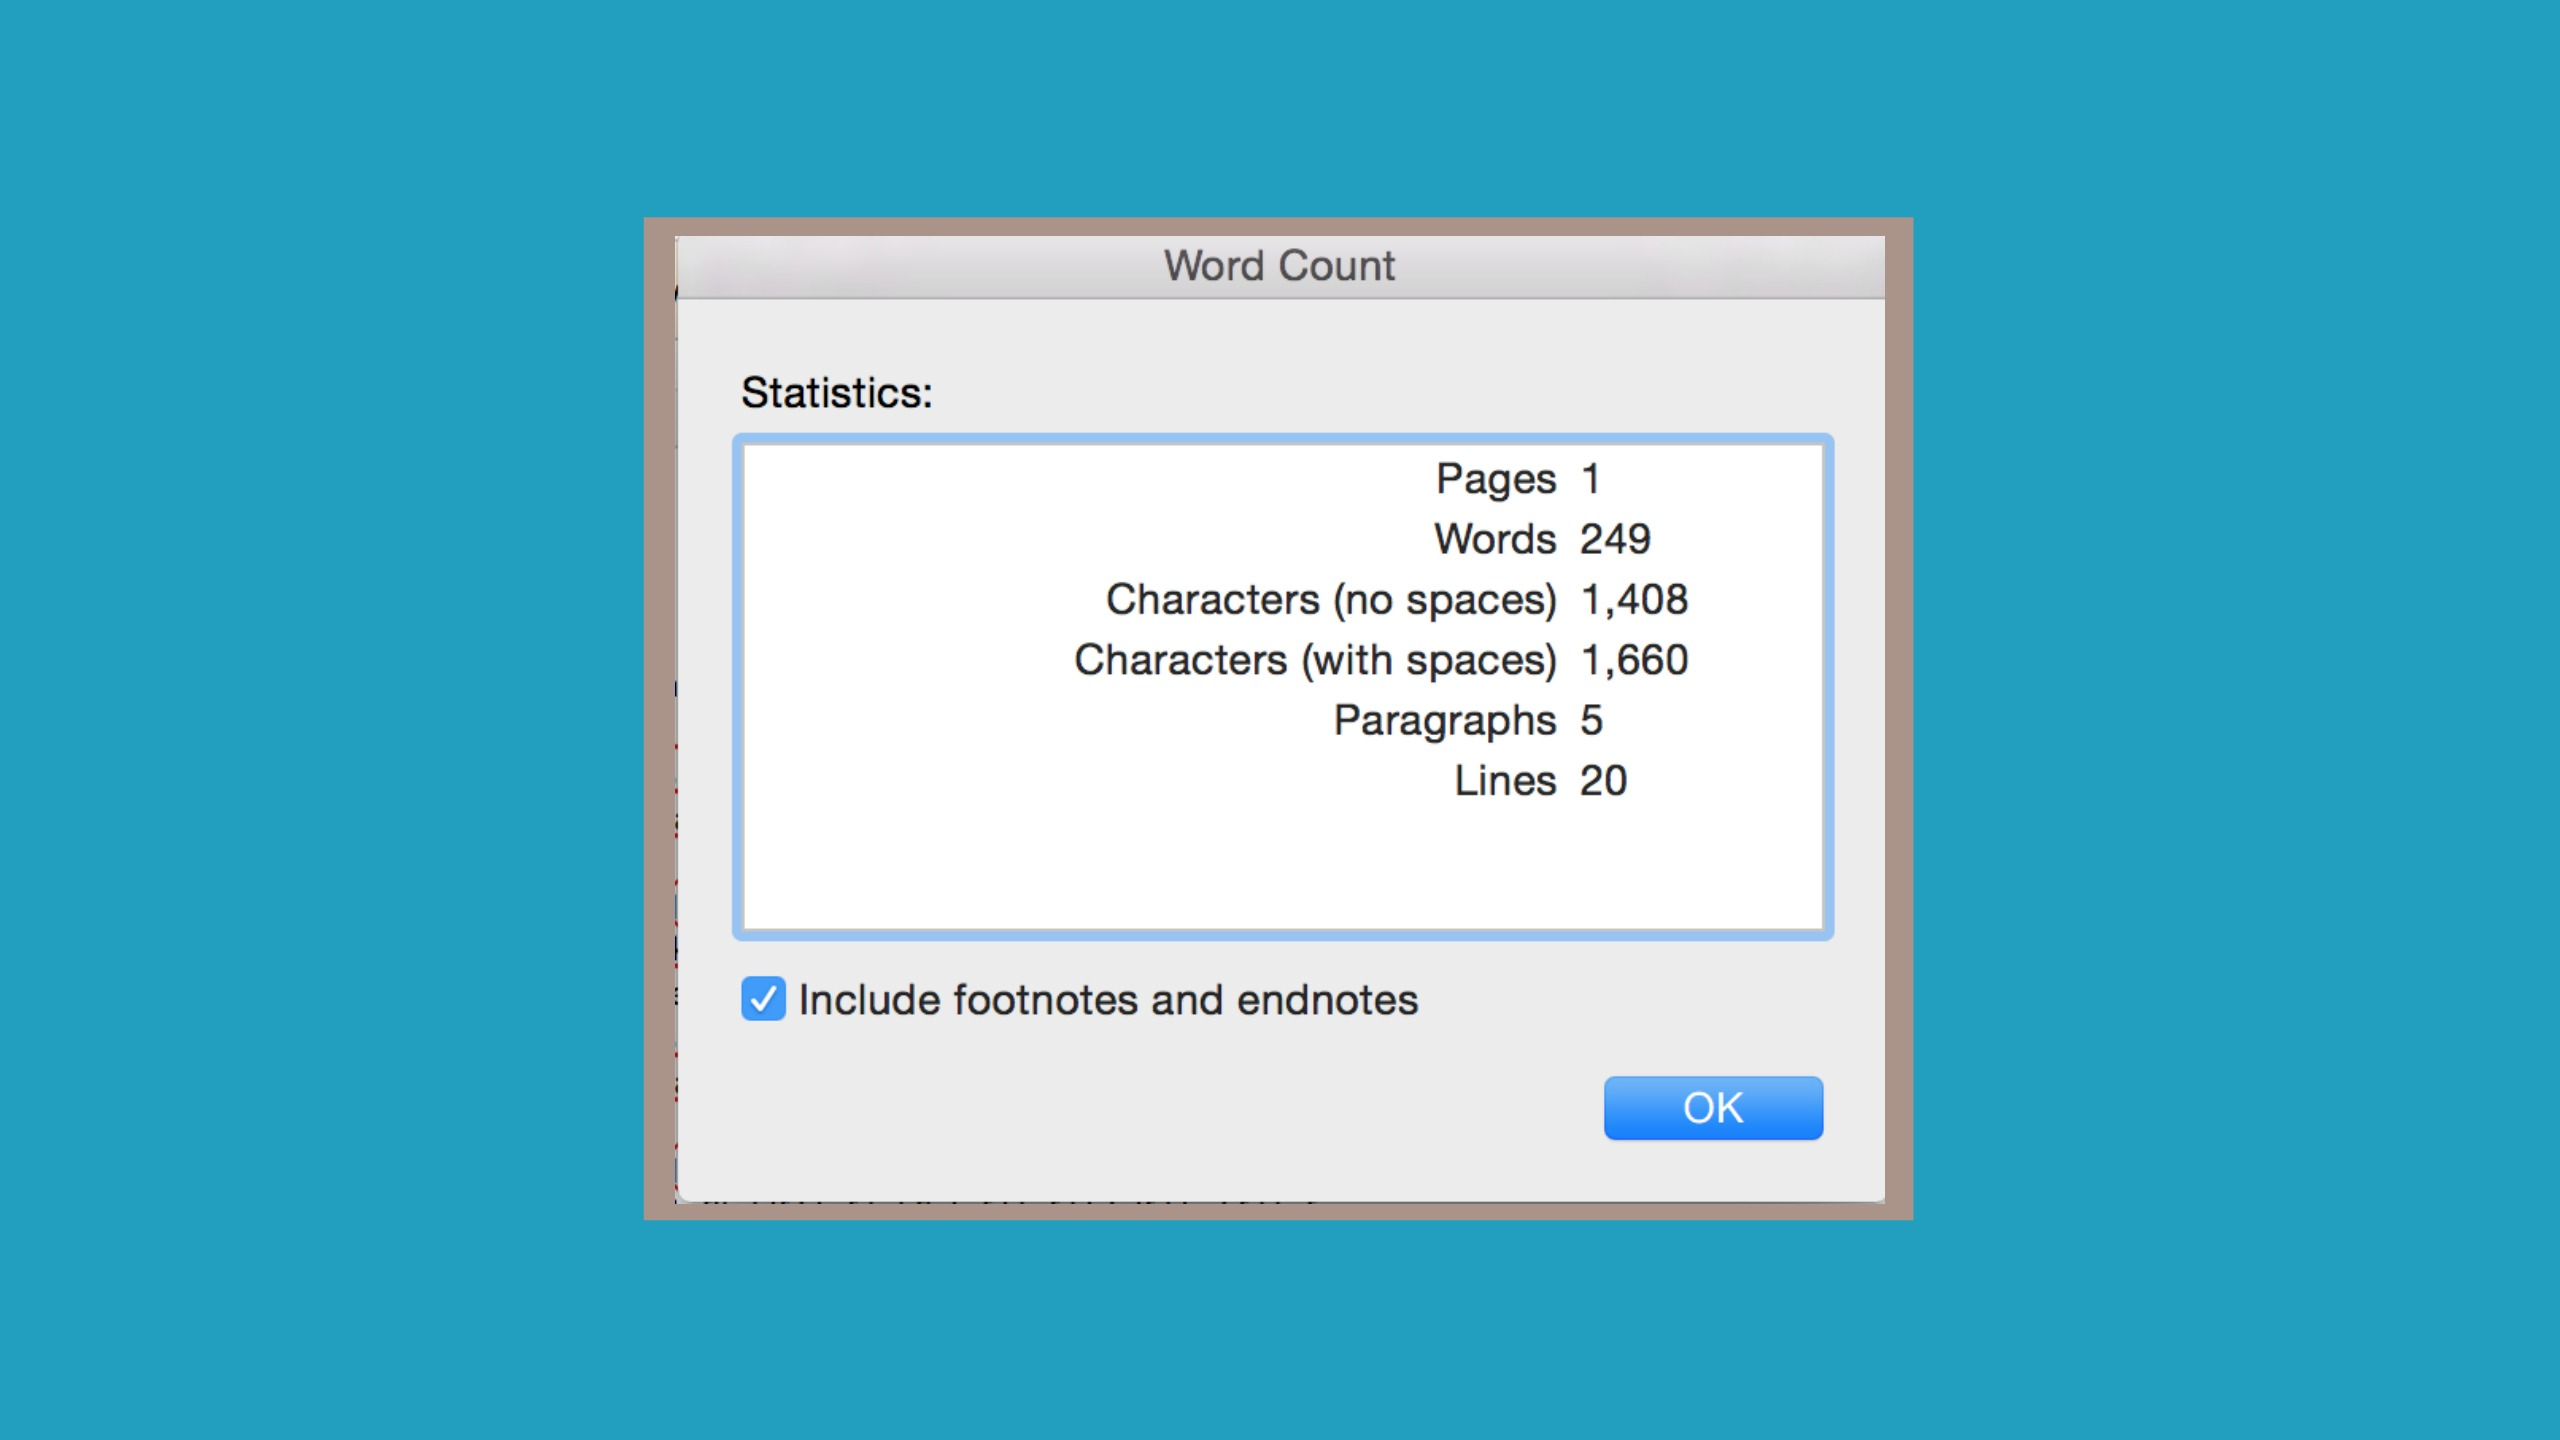 A screenshot of a Microsoft word count counter showing 249 words signifies changes to IELTS Word Count Rules